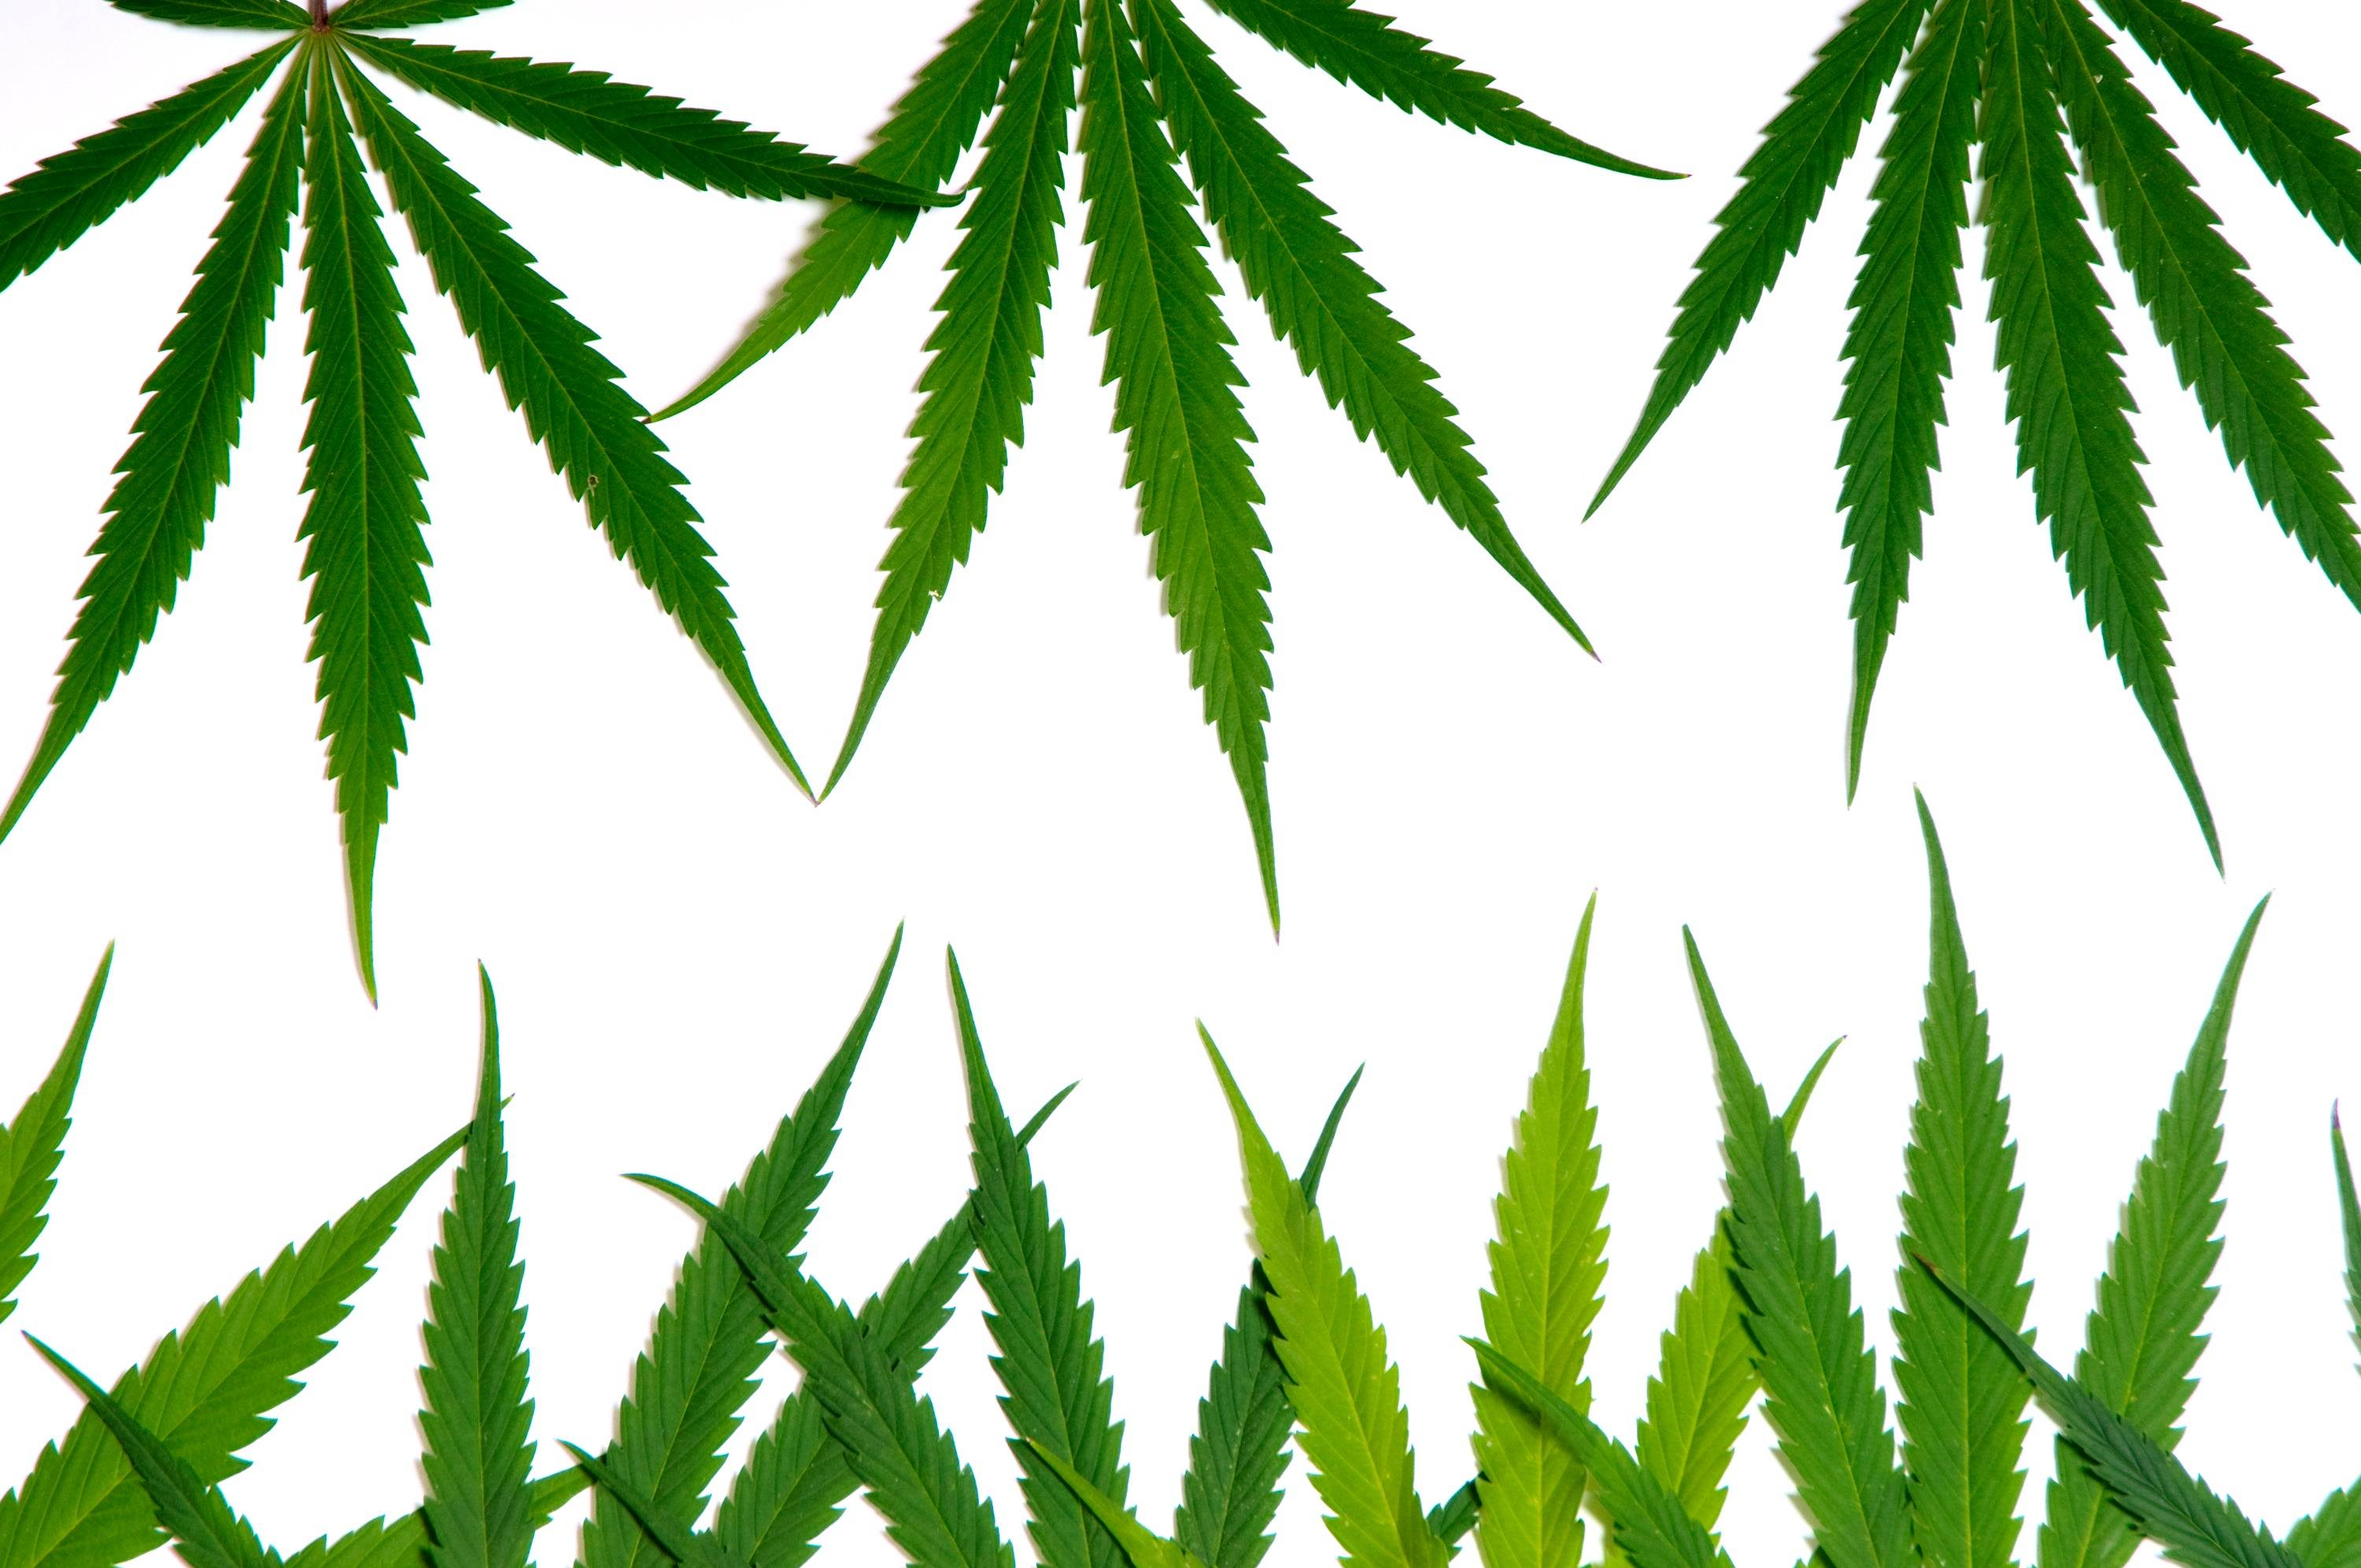 It's Now Abundantly Clear: Canopy Growth Is in a Different League From Aurora Cannabis | The Motley Fool